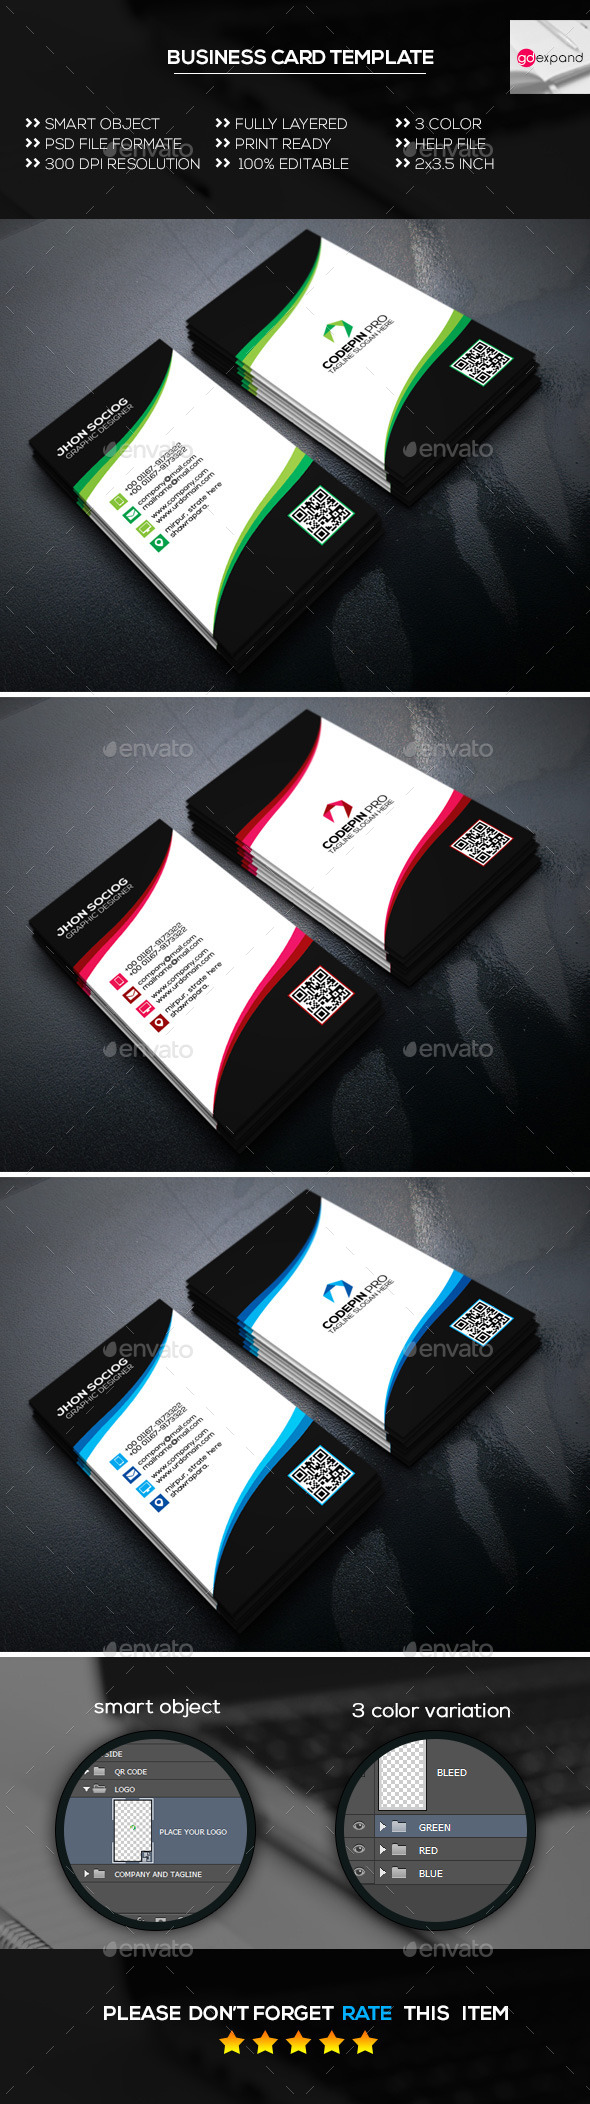 Creative Business Card Template 05 - Creative Business Cards